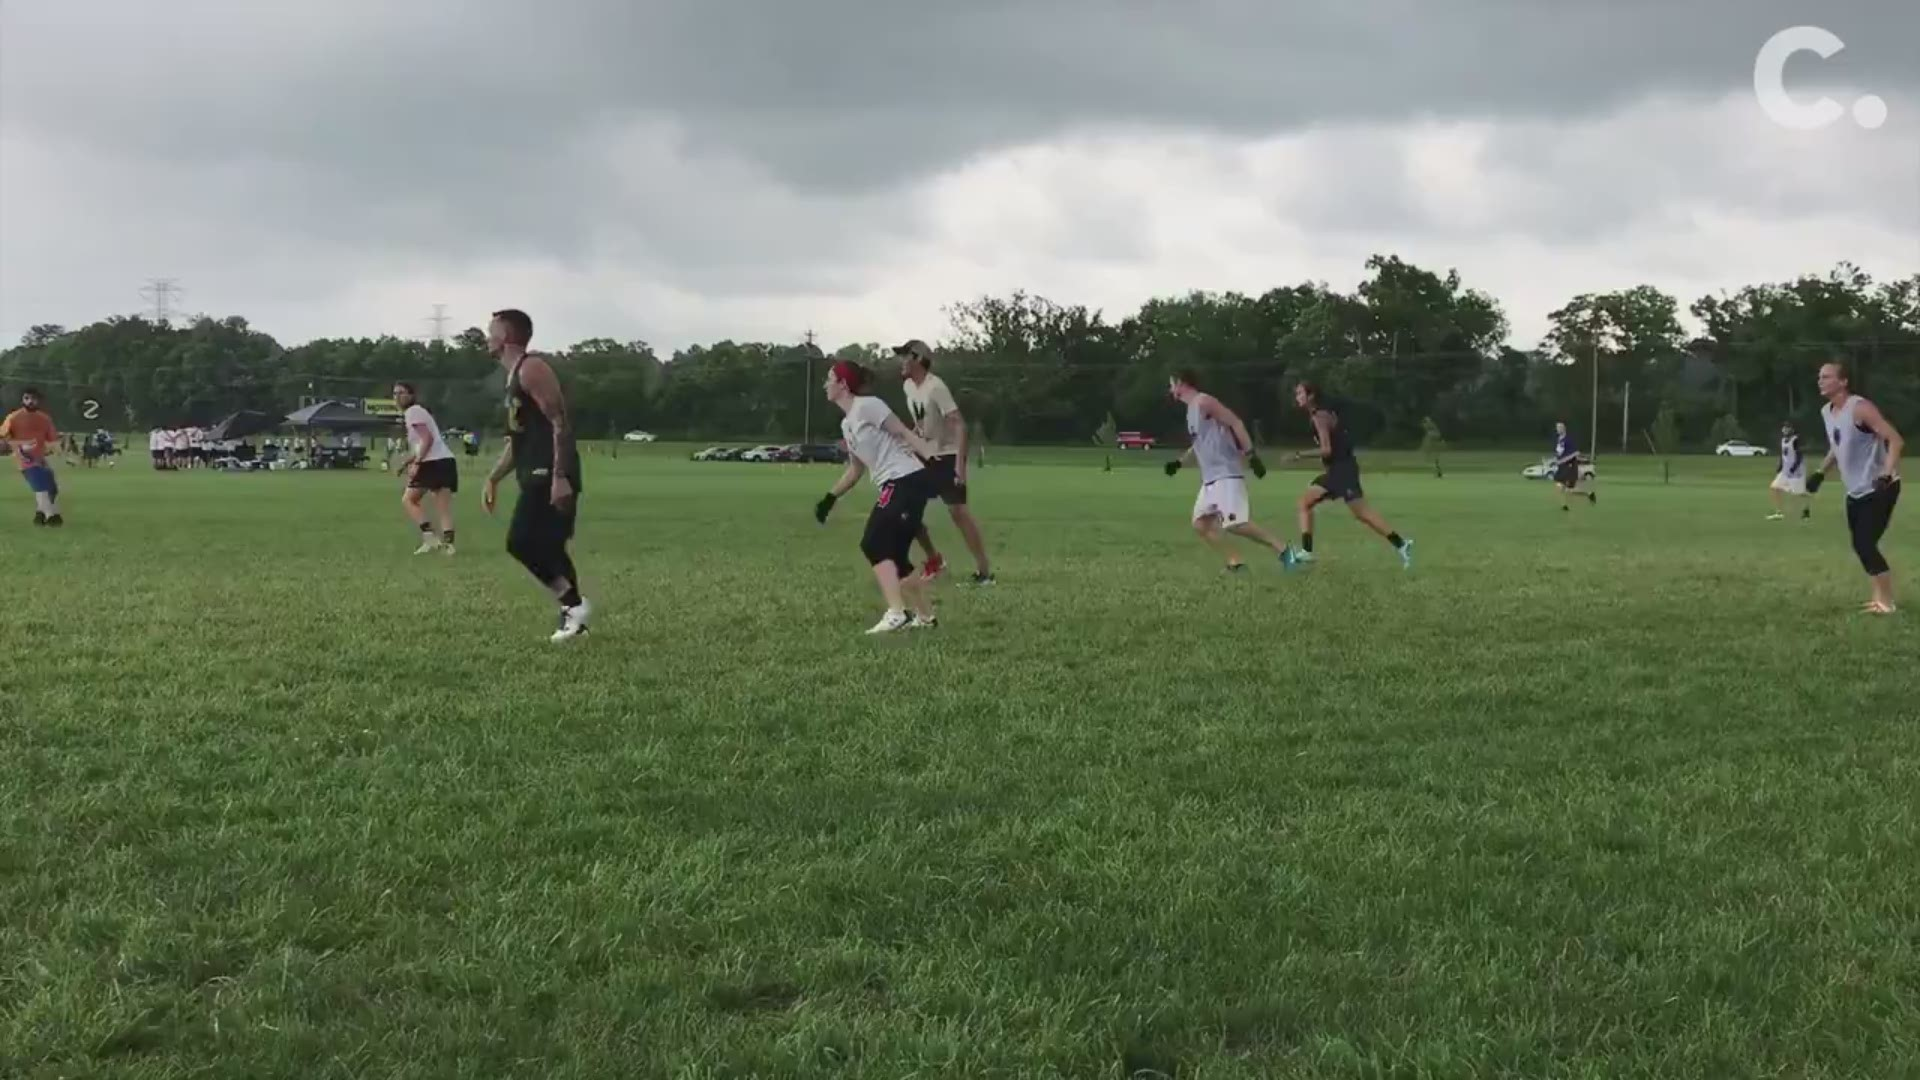 Facebook Post Claims Colombian Ultimate Frisbee Players